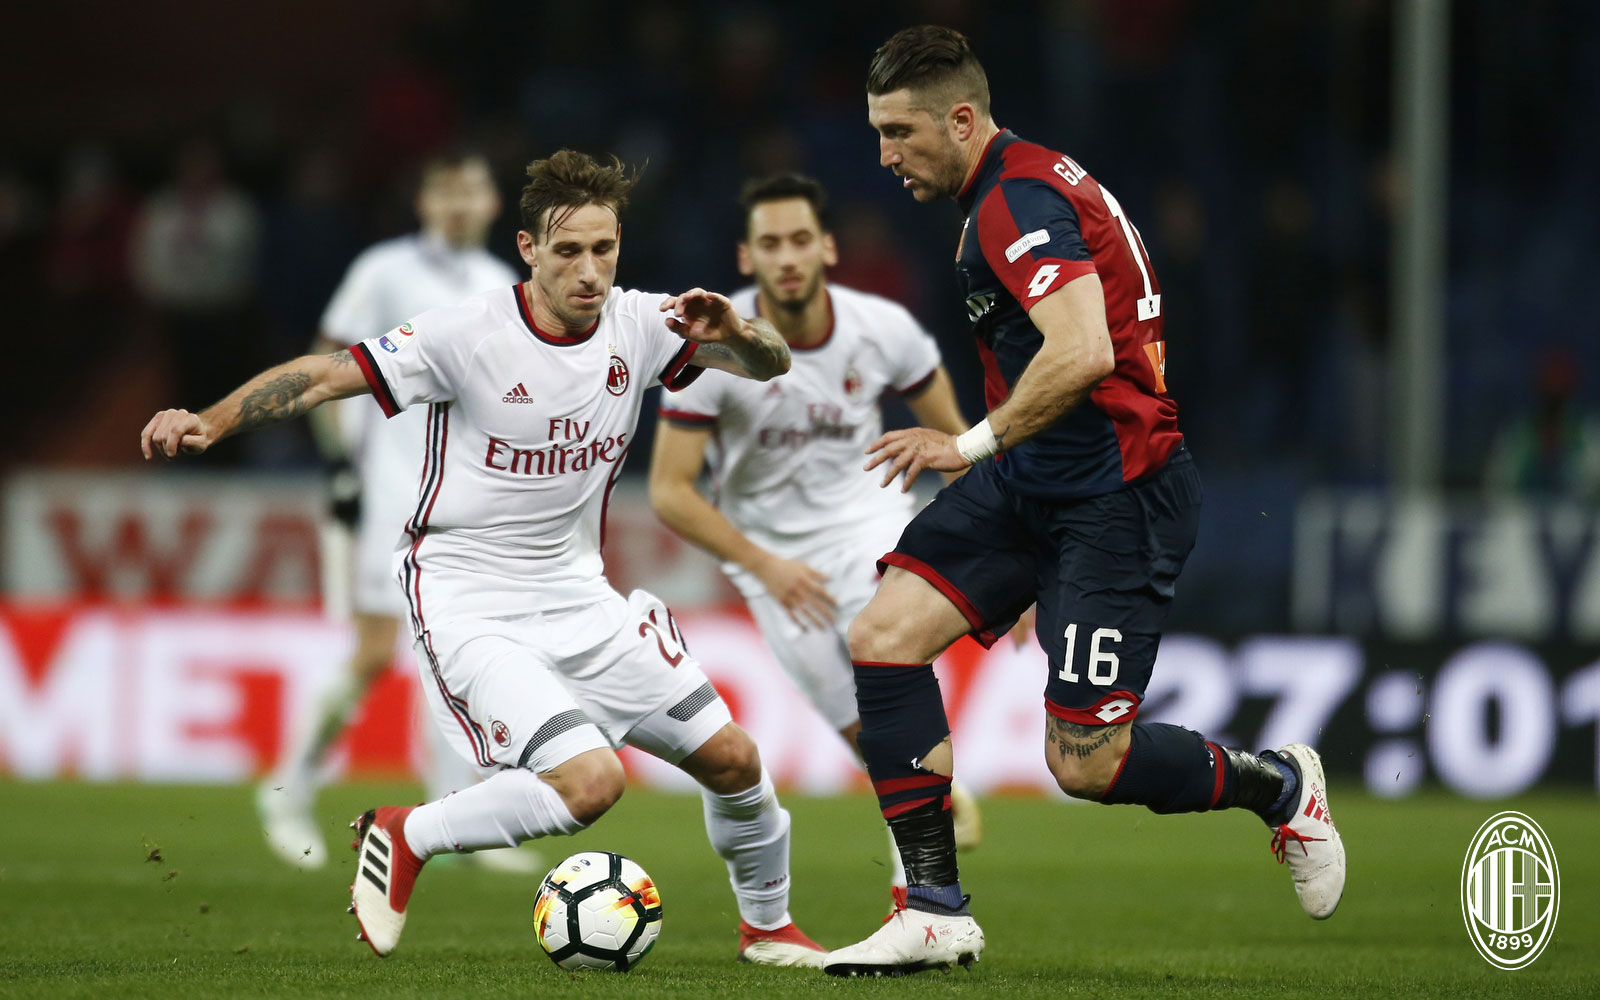 Lucas Biglia and Andrey Galabinov during Genoa-Milan at Stadio Luigi Ferraris on March 11, 2018. (@acmilan.com)